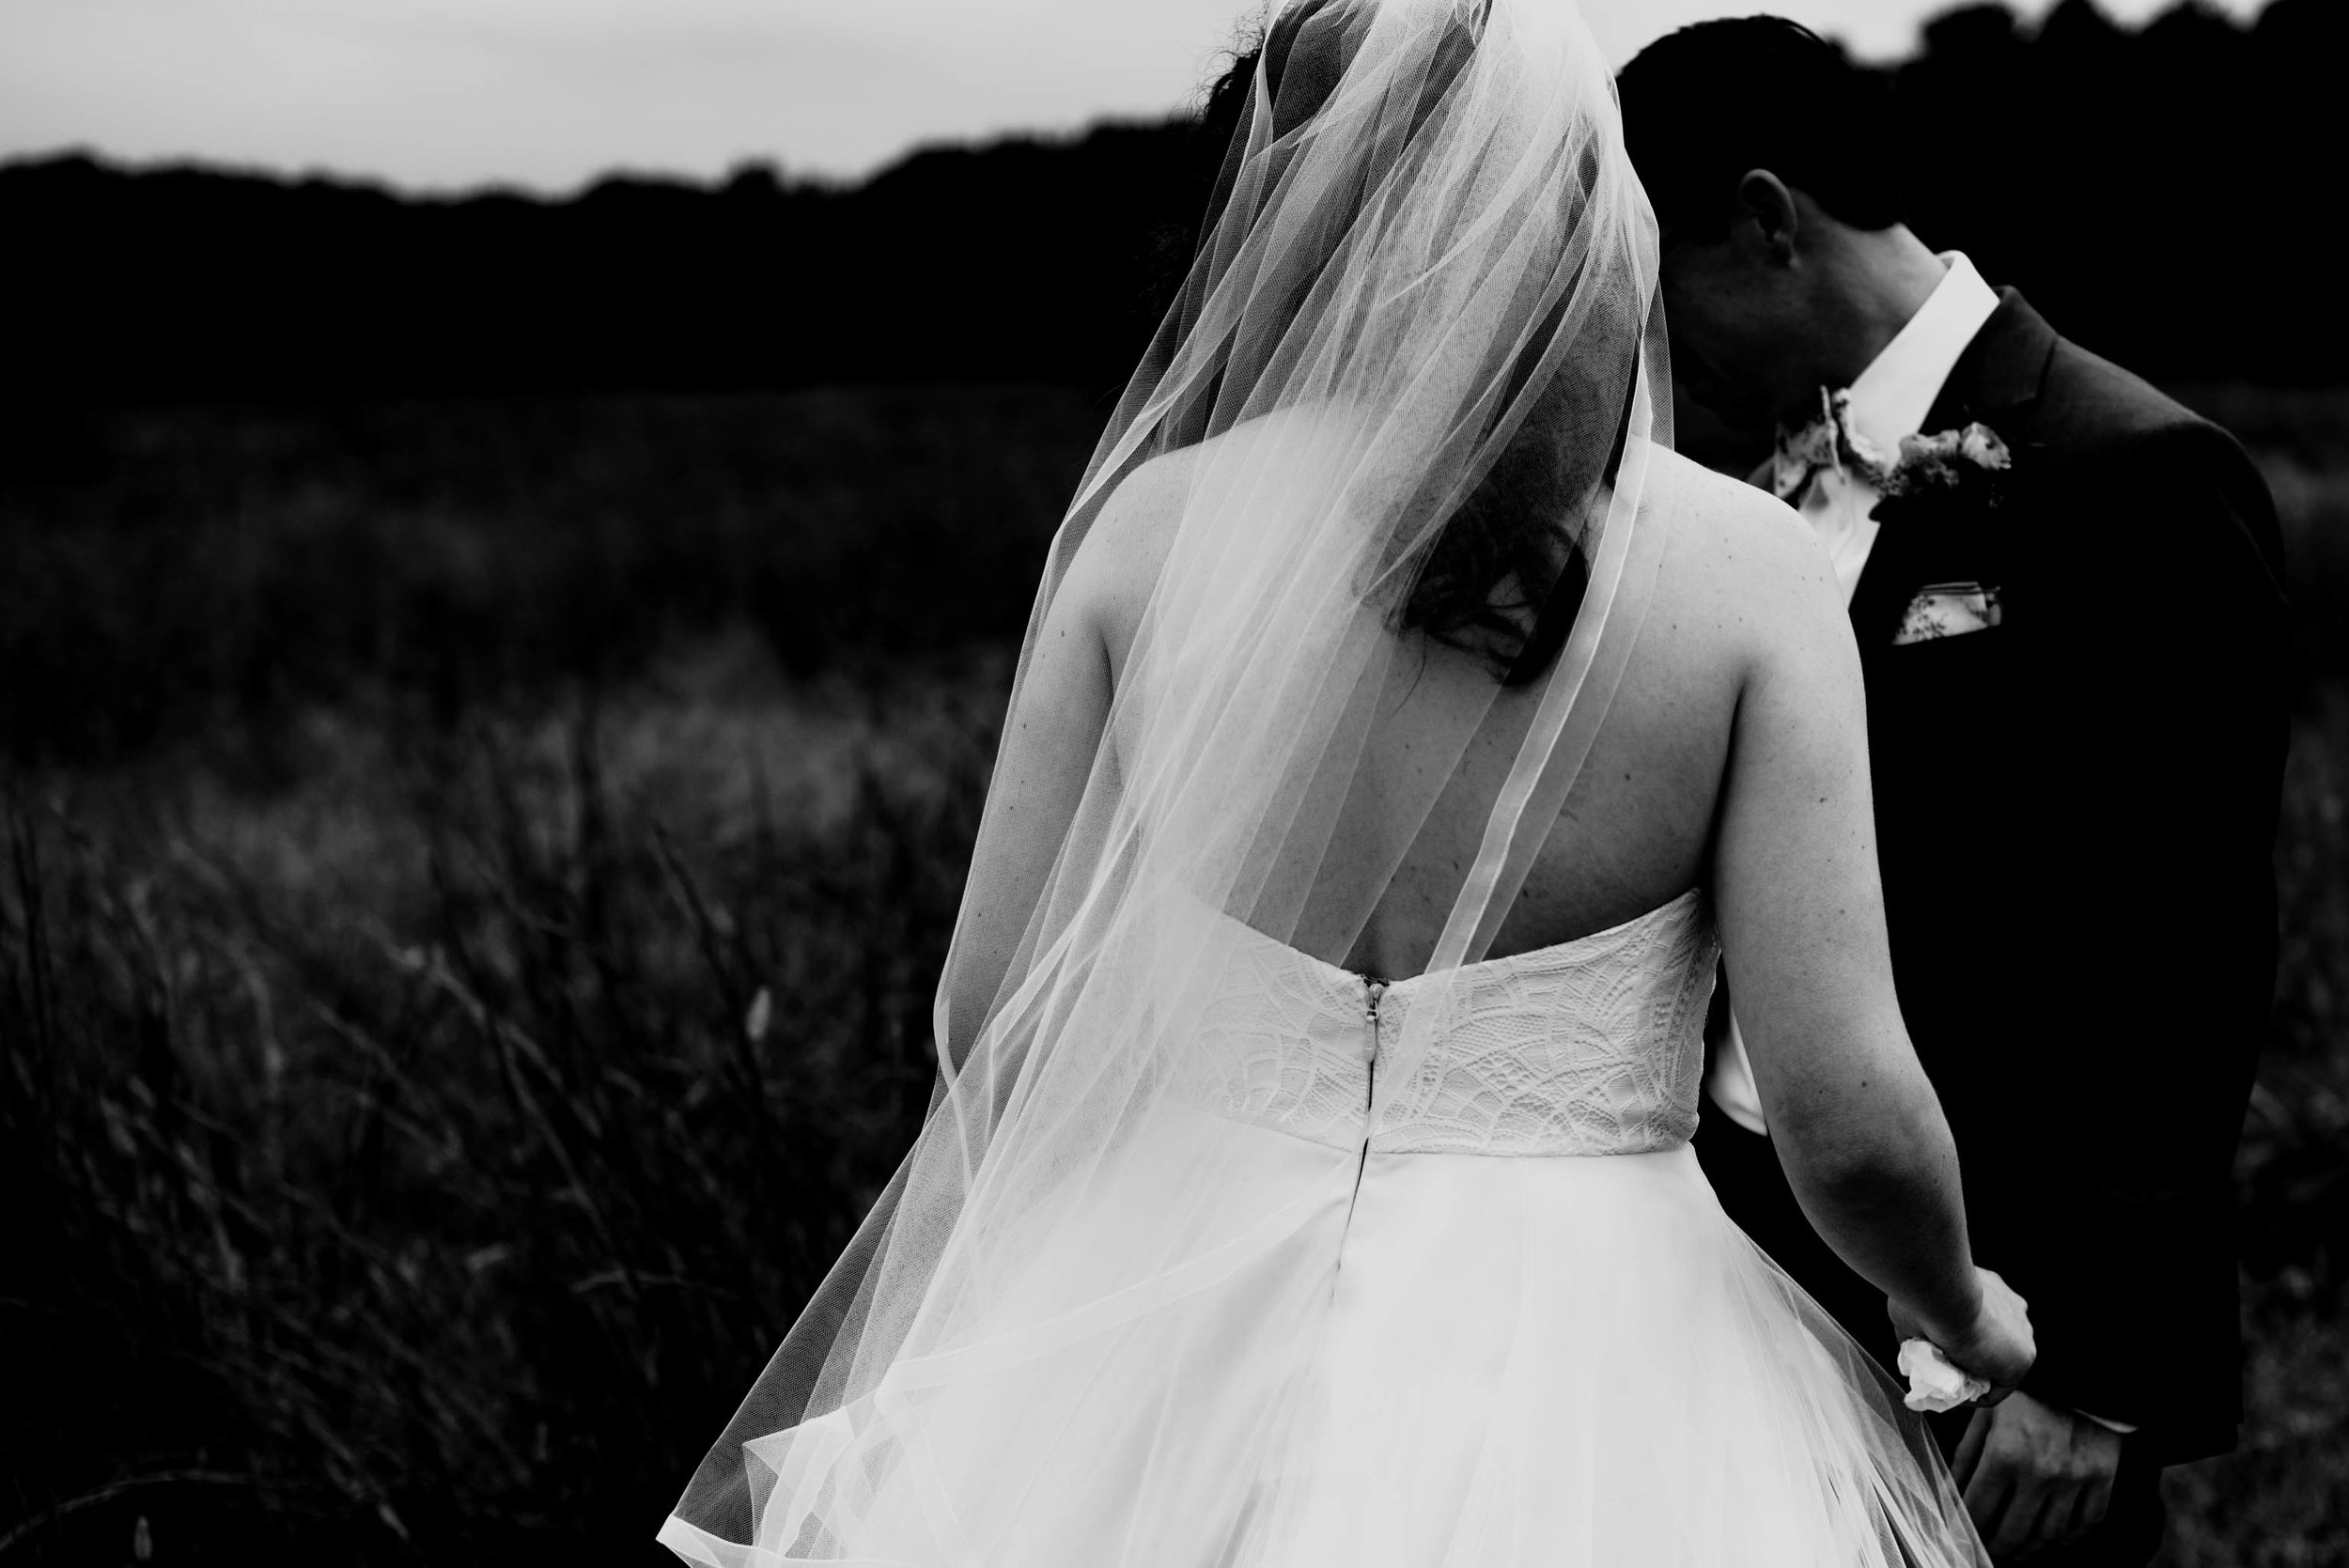 black and white photo of the brides veil in the wind taken from behind the bride